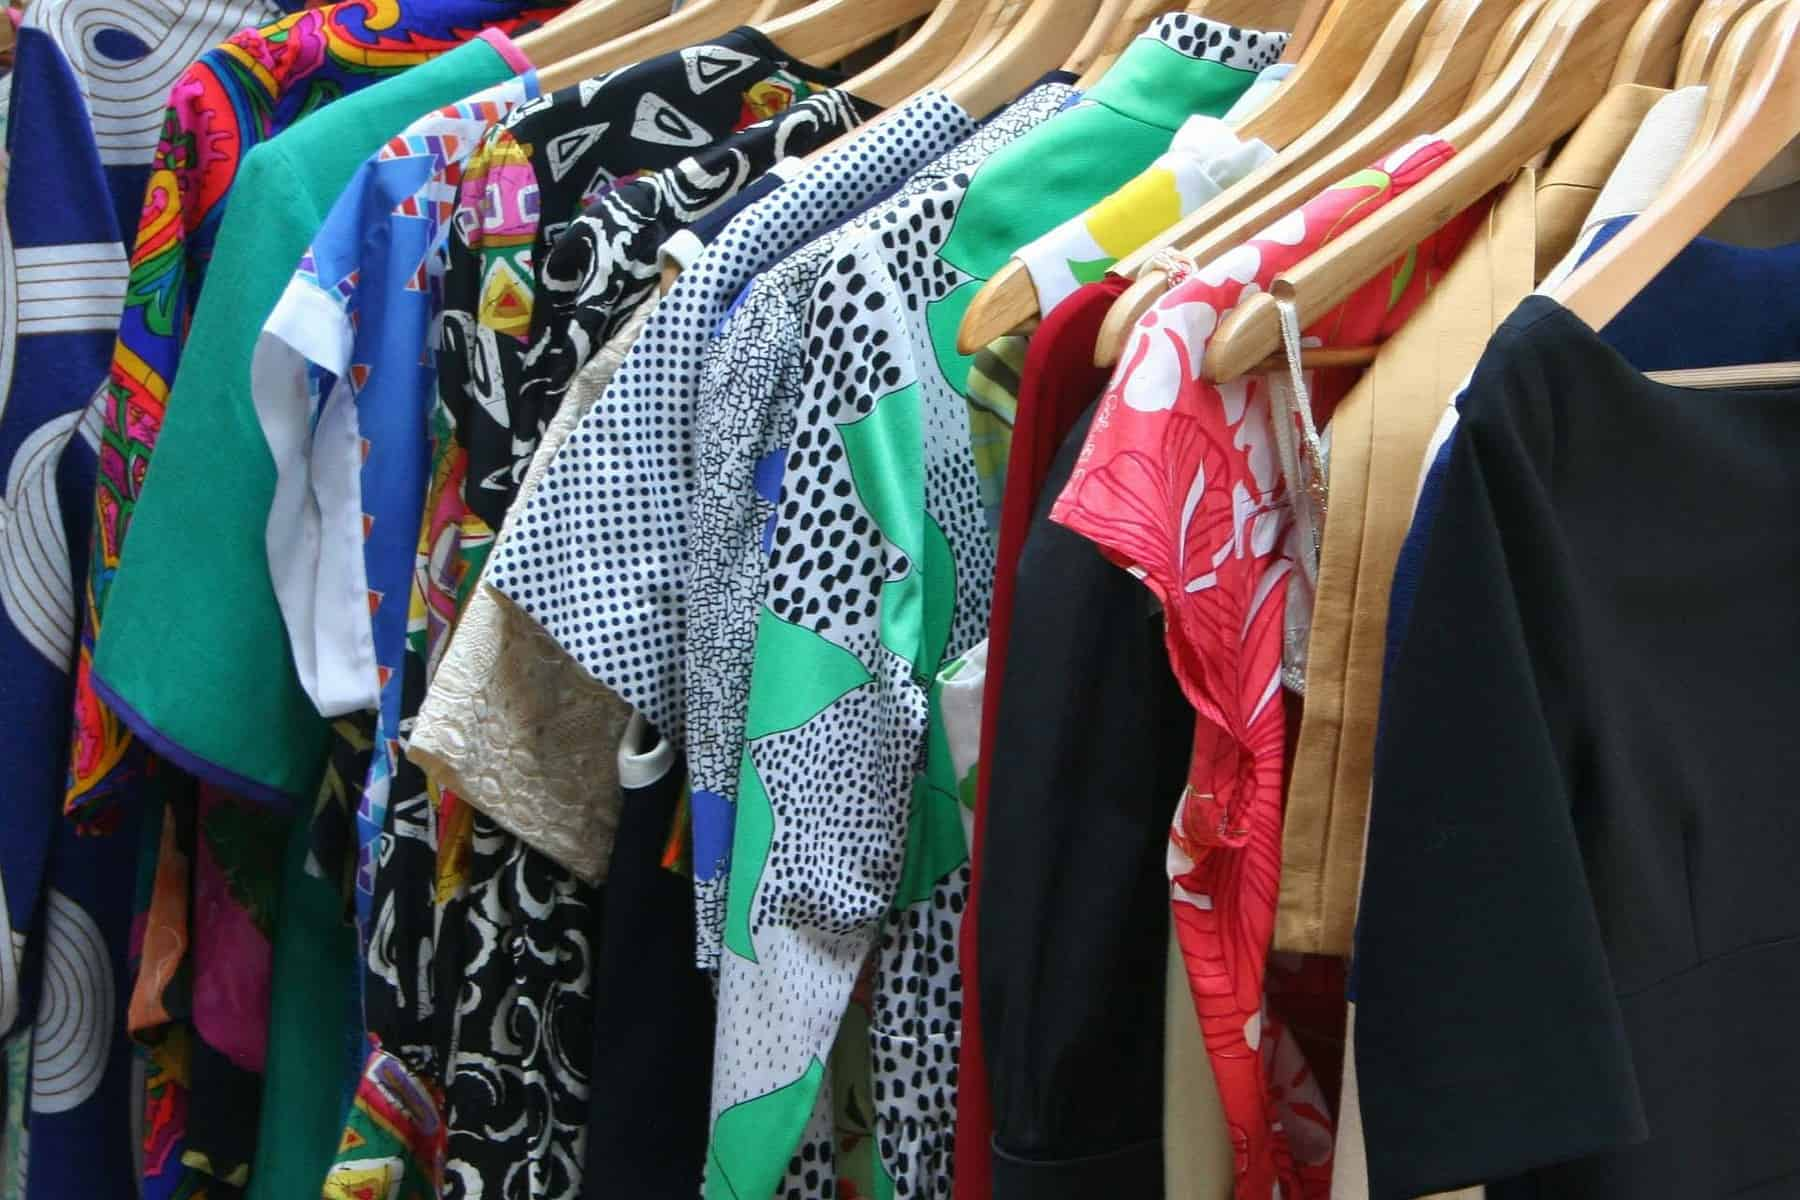 The Myth of the Seasonal Closet Switch